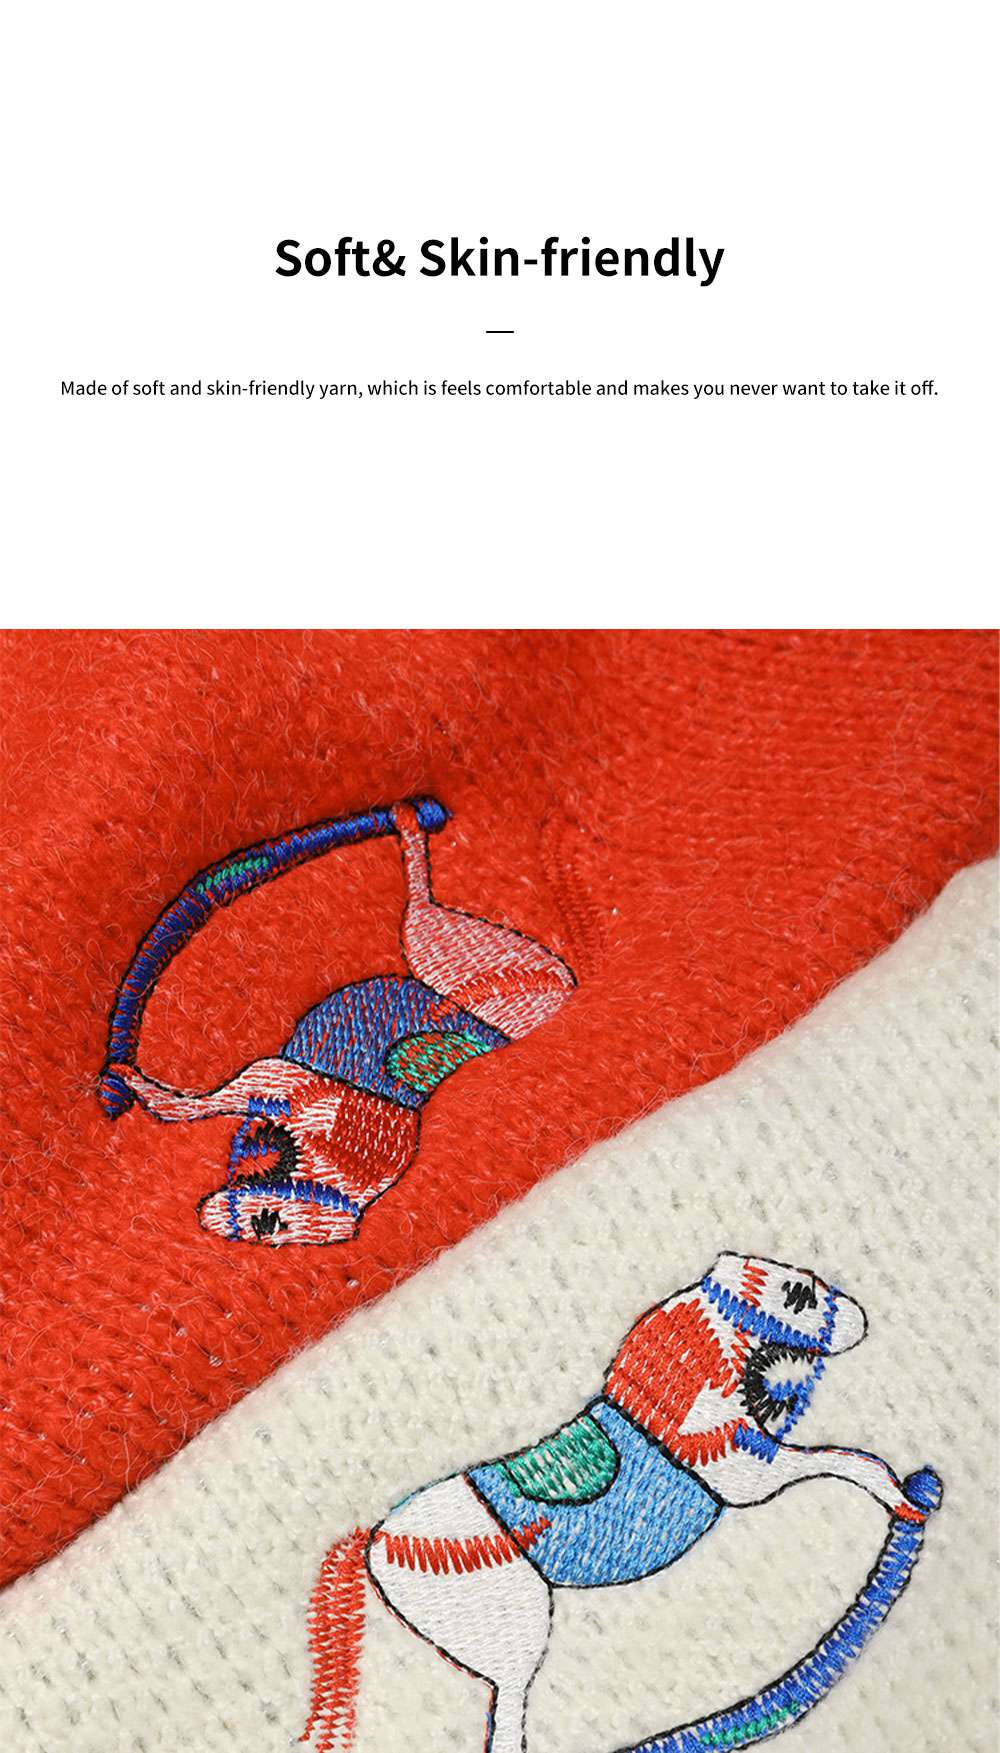 ELFSACK Women's Loose Knit Sweater Fashion Embroidery Print Cardigan Coat with Long Sleeves for Autumn and Winter Christmas Gift 2